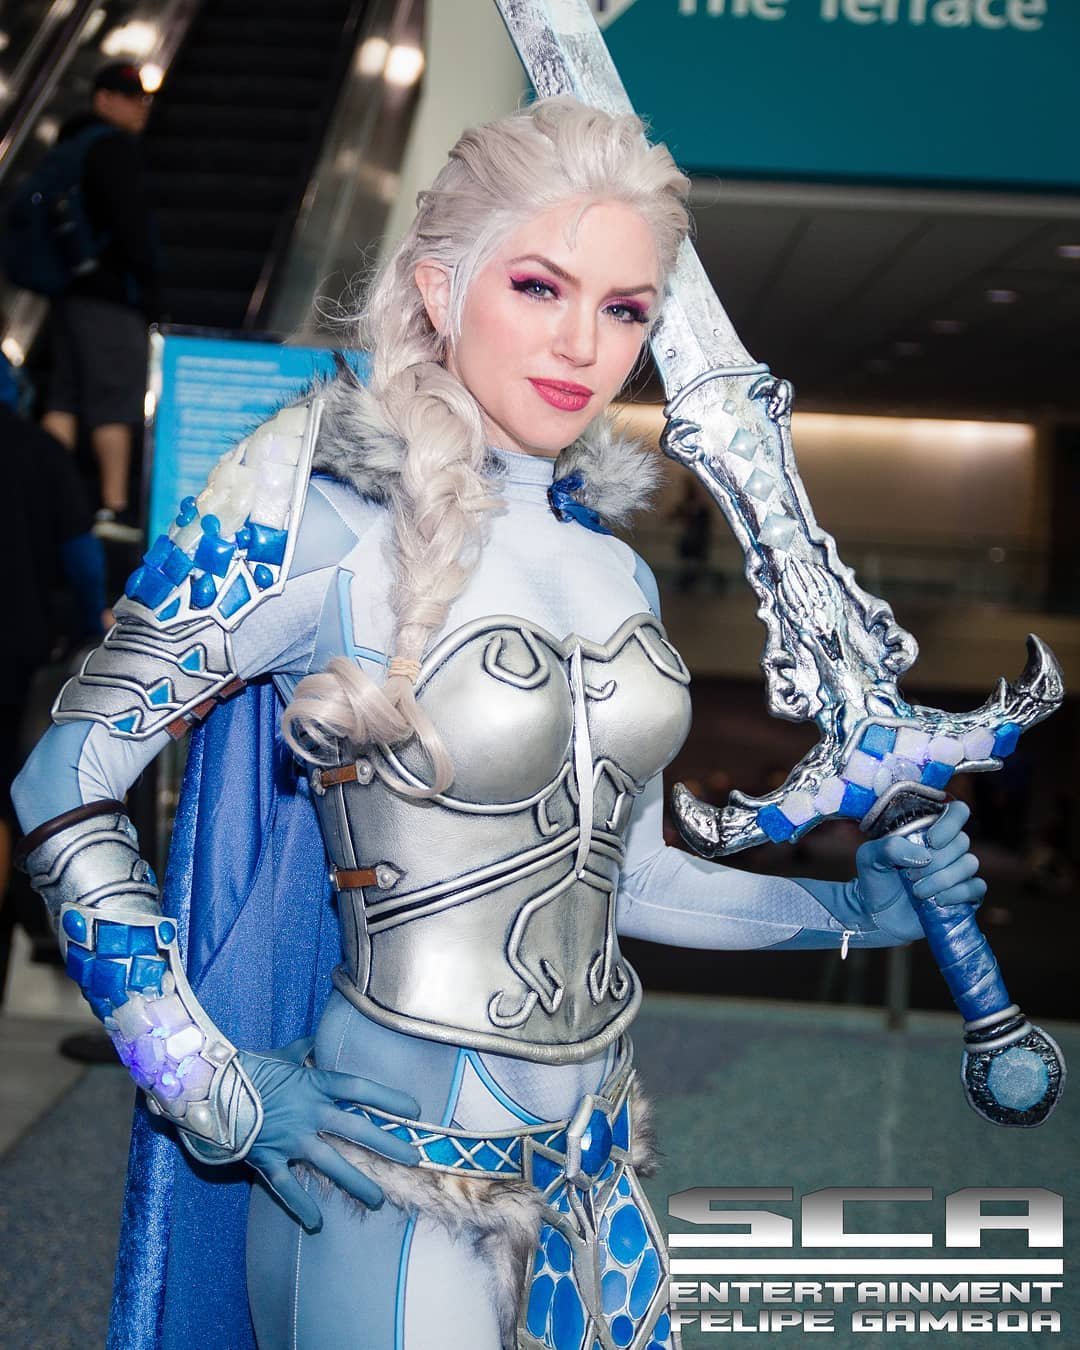 Frozen: Battle-armor Elsa cosplay by ArmoredHeart